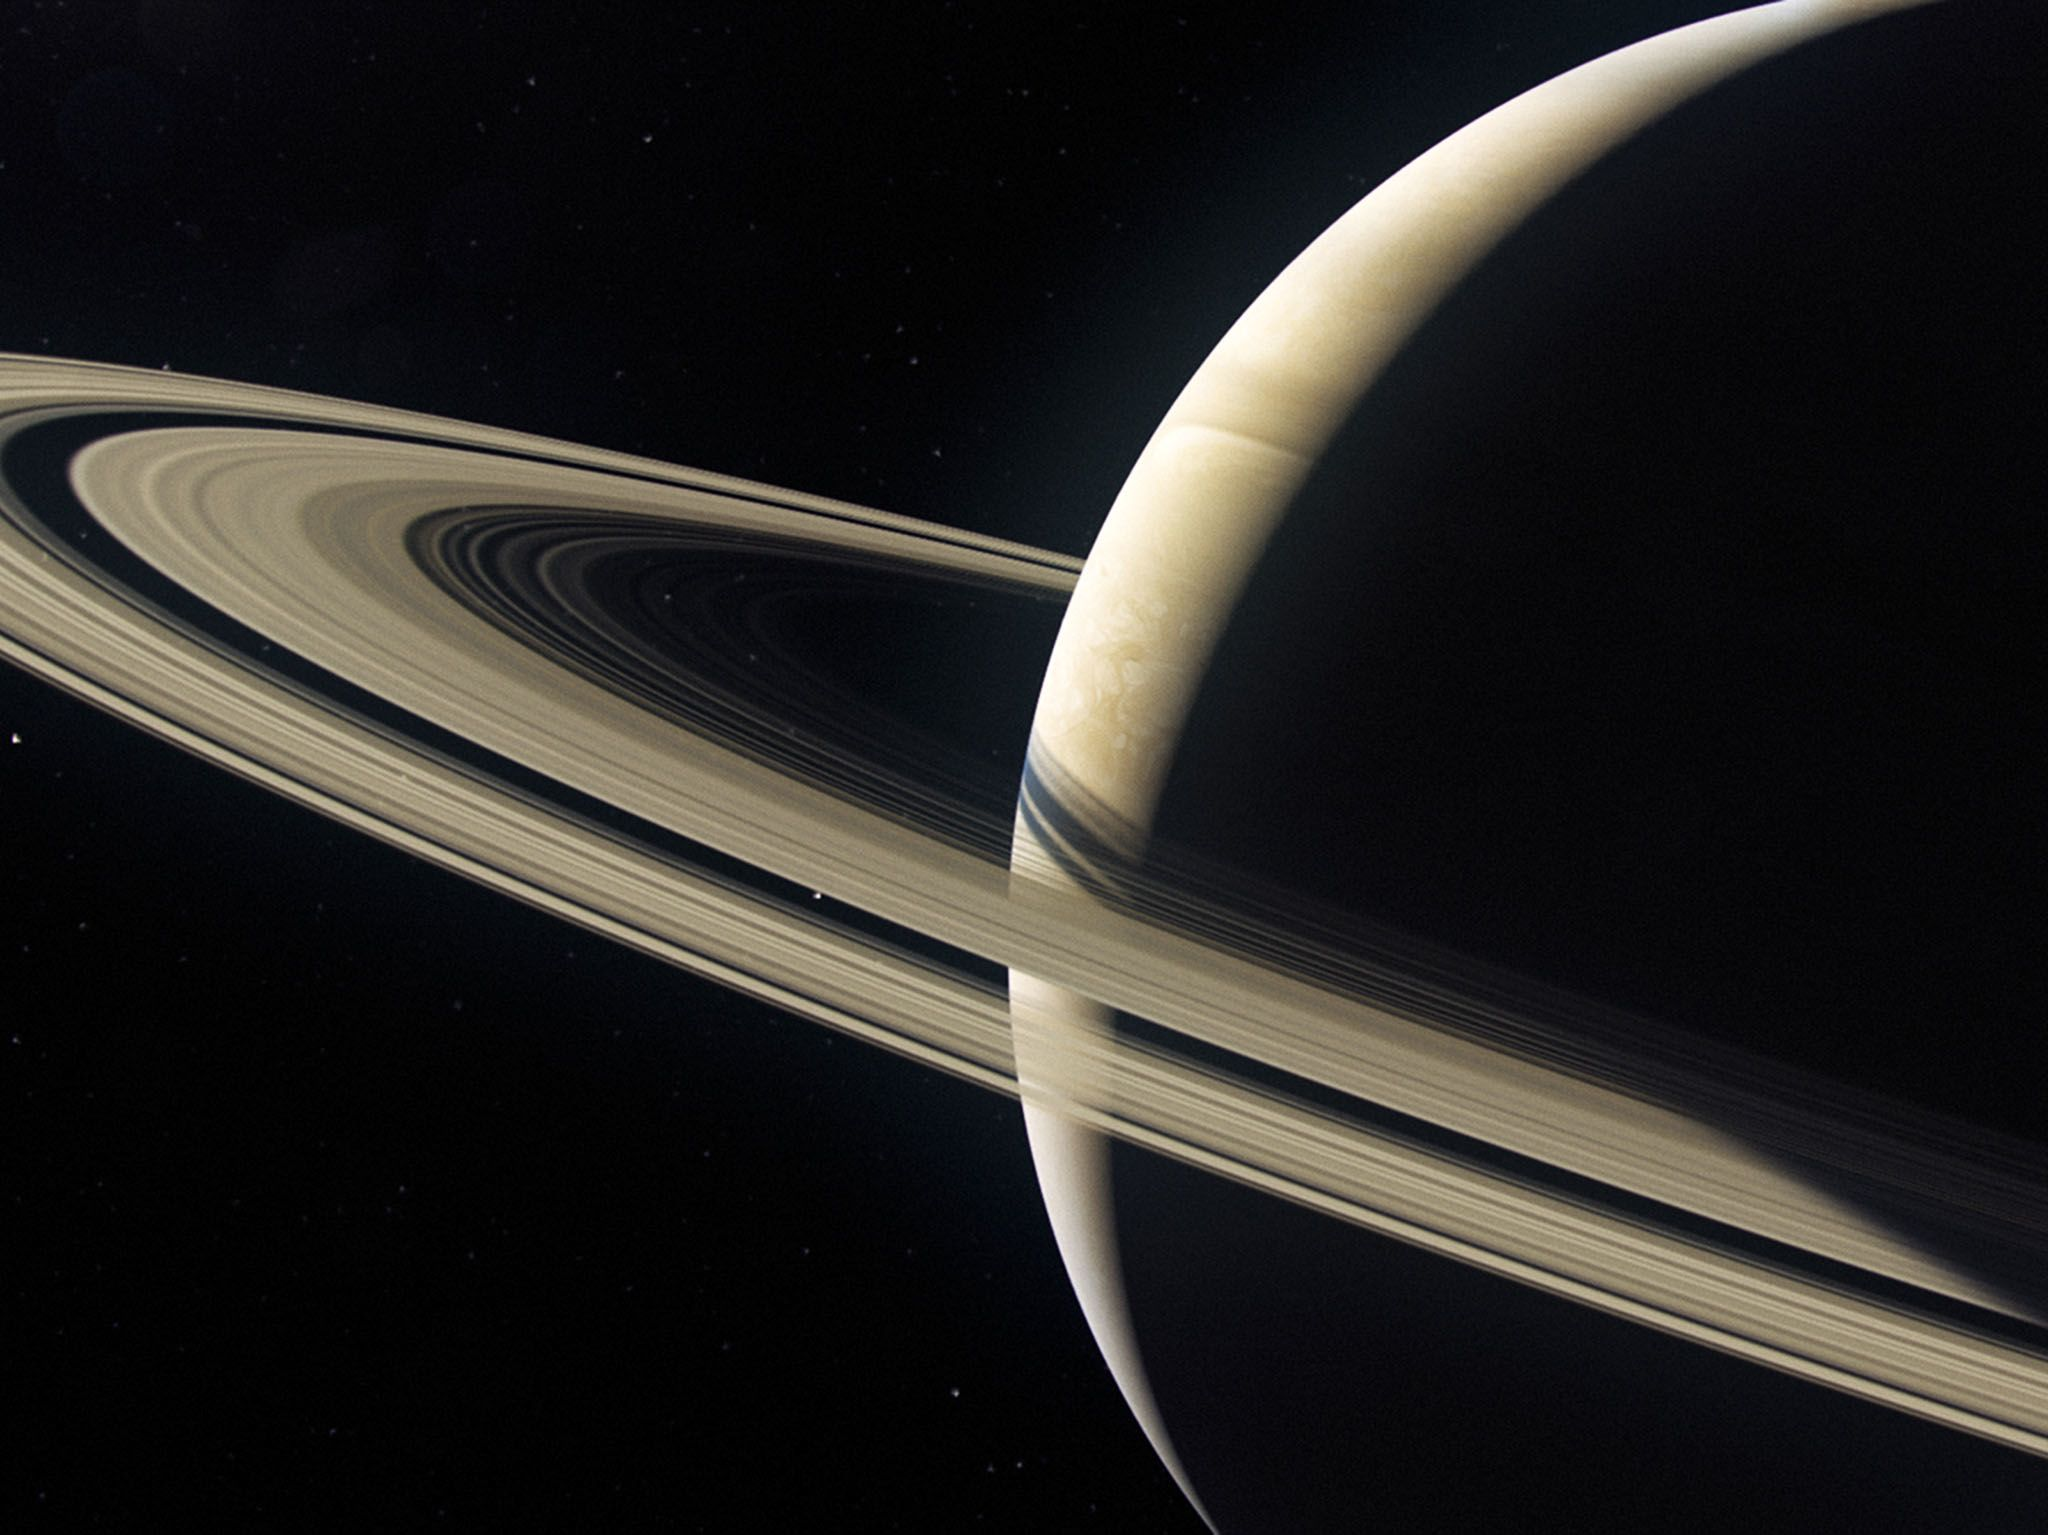 Saturn: CGI of a backlit and beautiful Saturn planet with its rings. Saturn is the 6th planet... [Photo of the day - September 2017]